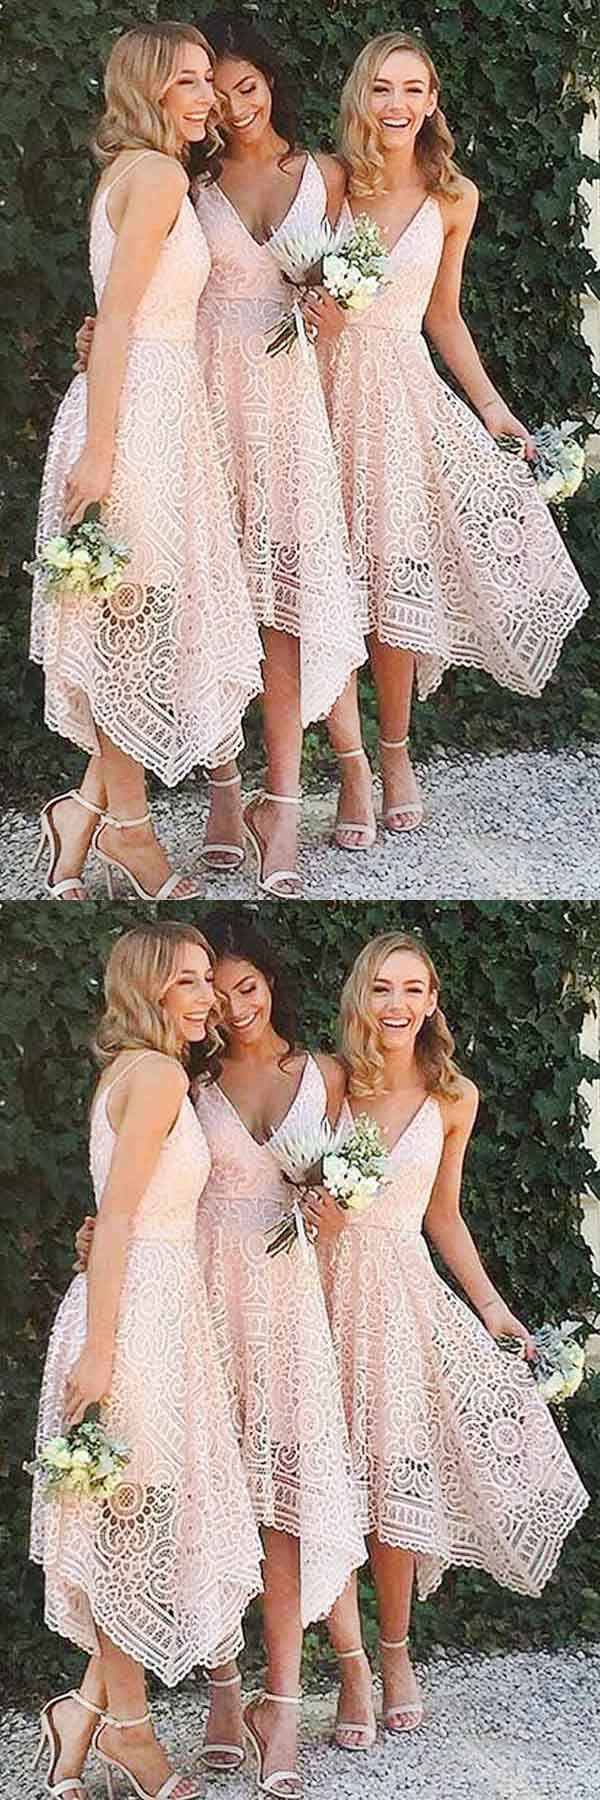 A-Line V-Neck Pearl Pink Lace Bridesmaid/Prom/Homecoming Dress BD053 #bridesmaid #dress #prom #evening #party #lace #fashion